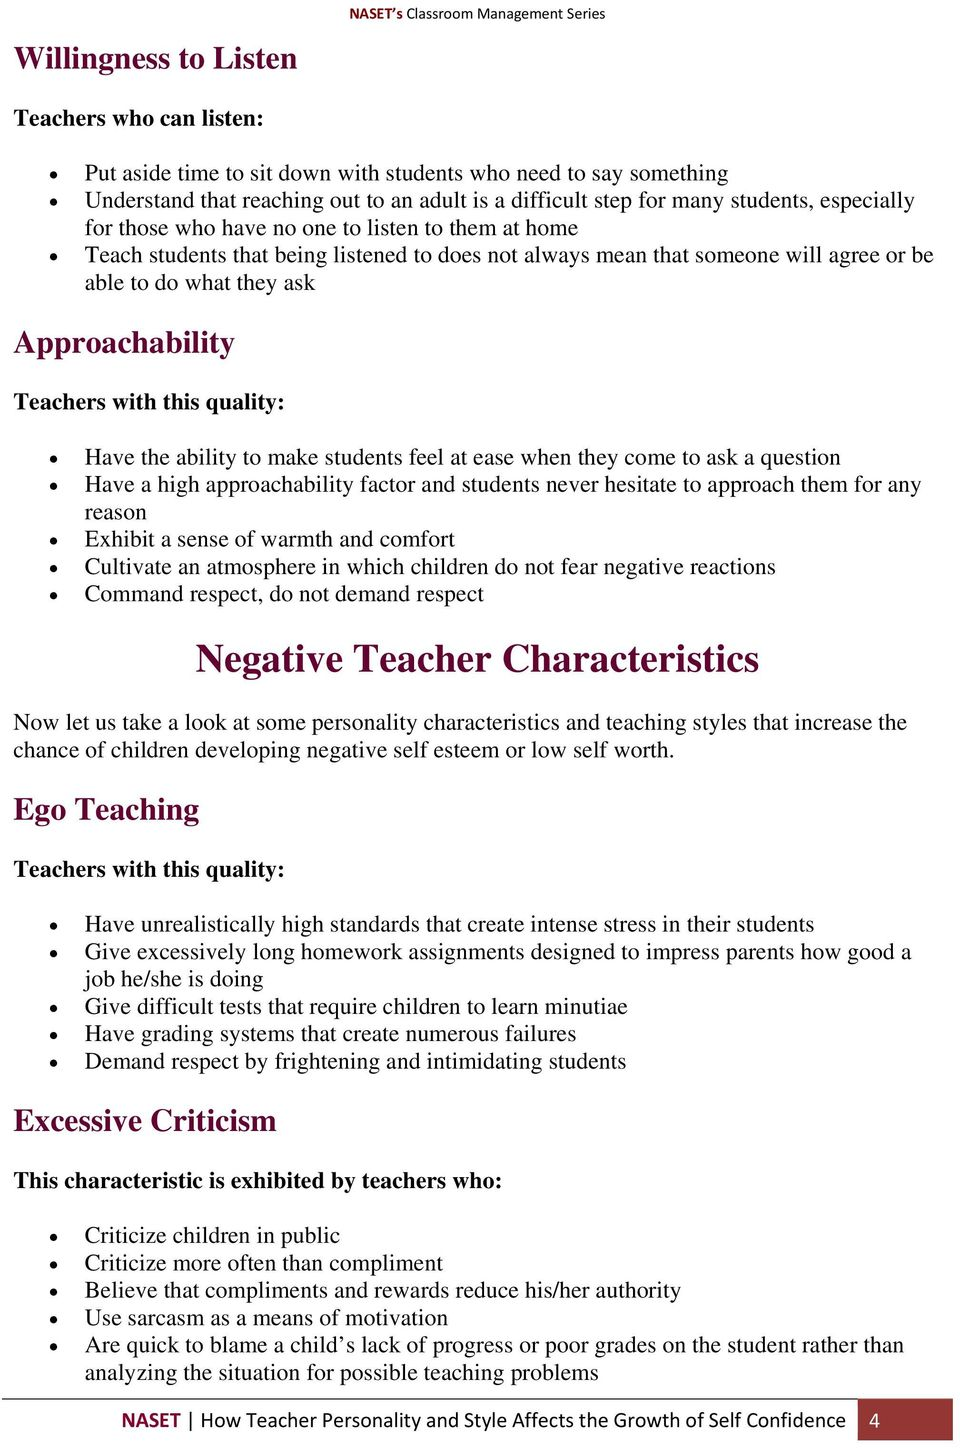 Teachers with this quality: Have the ability to make students feel at ease when they come to ask a question Have a high approachability factor and students never hesitate to approach them for any